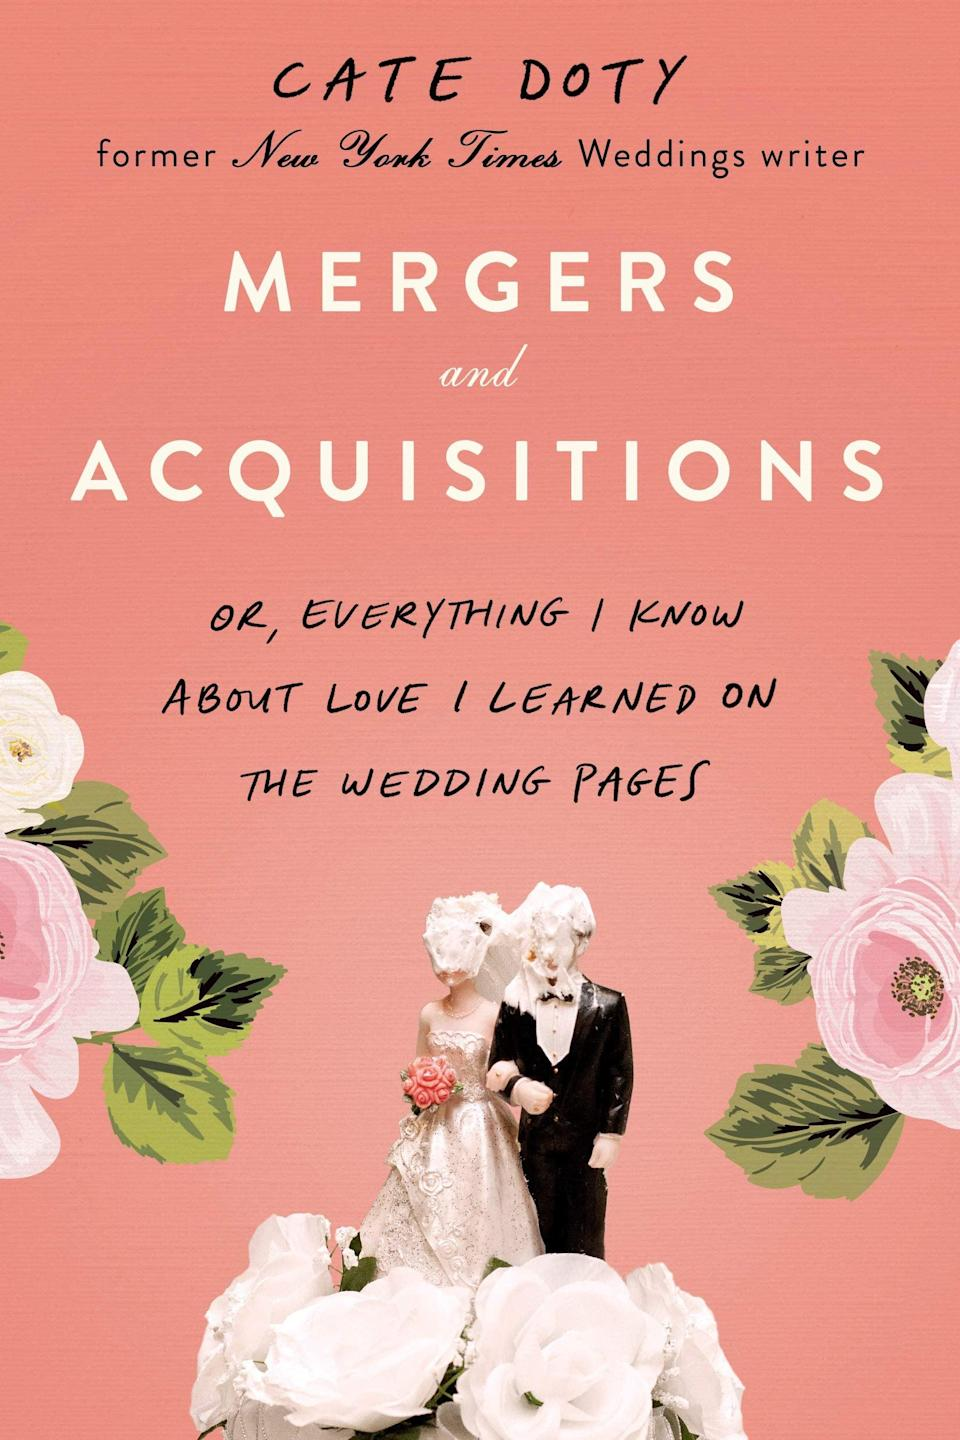 """<p>Cate Doty's dishy memoir <span><strong>Mergers and Acquisitions</strong></span> is a deep dive into New York City's high society, as well as the <a class=""""link rapid-noclick-resp"""" href=""""https://www.popsugar.co.uk/Wedding"""" rel=""""nofollow noopener"""" target=""""_blank"""" data-ylk=""""slk:wedding"""">wedding</a> industry at large. As a former writer for <strong>The New York Times</strong>'s <a class=""""link rapid-noclick-resp"""" href=""""https://www.popsugar.co.uk/Wedding"""" rel=""""nofollow noopener"""" target=""""_blank"""" data-ylk=""""slk:wedding"""">wedding</a> section, Doty has seen it all - from the lengths couples will go to in order to land an engagement announcement in the paper to what it's like to fact-check someone's love story - and yet, she's not cynical about romance, as evidenced by her own story of finding love, which is interwoven in between all of those juicy anecdotes. </p> <p><em>Out May 4</em></p>"""